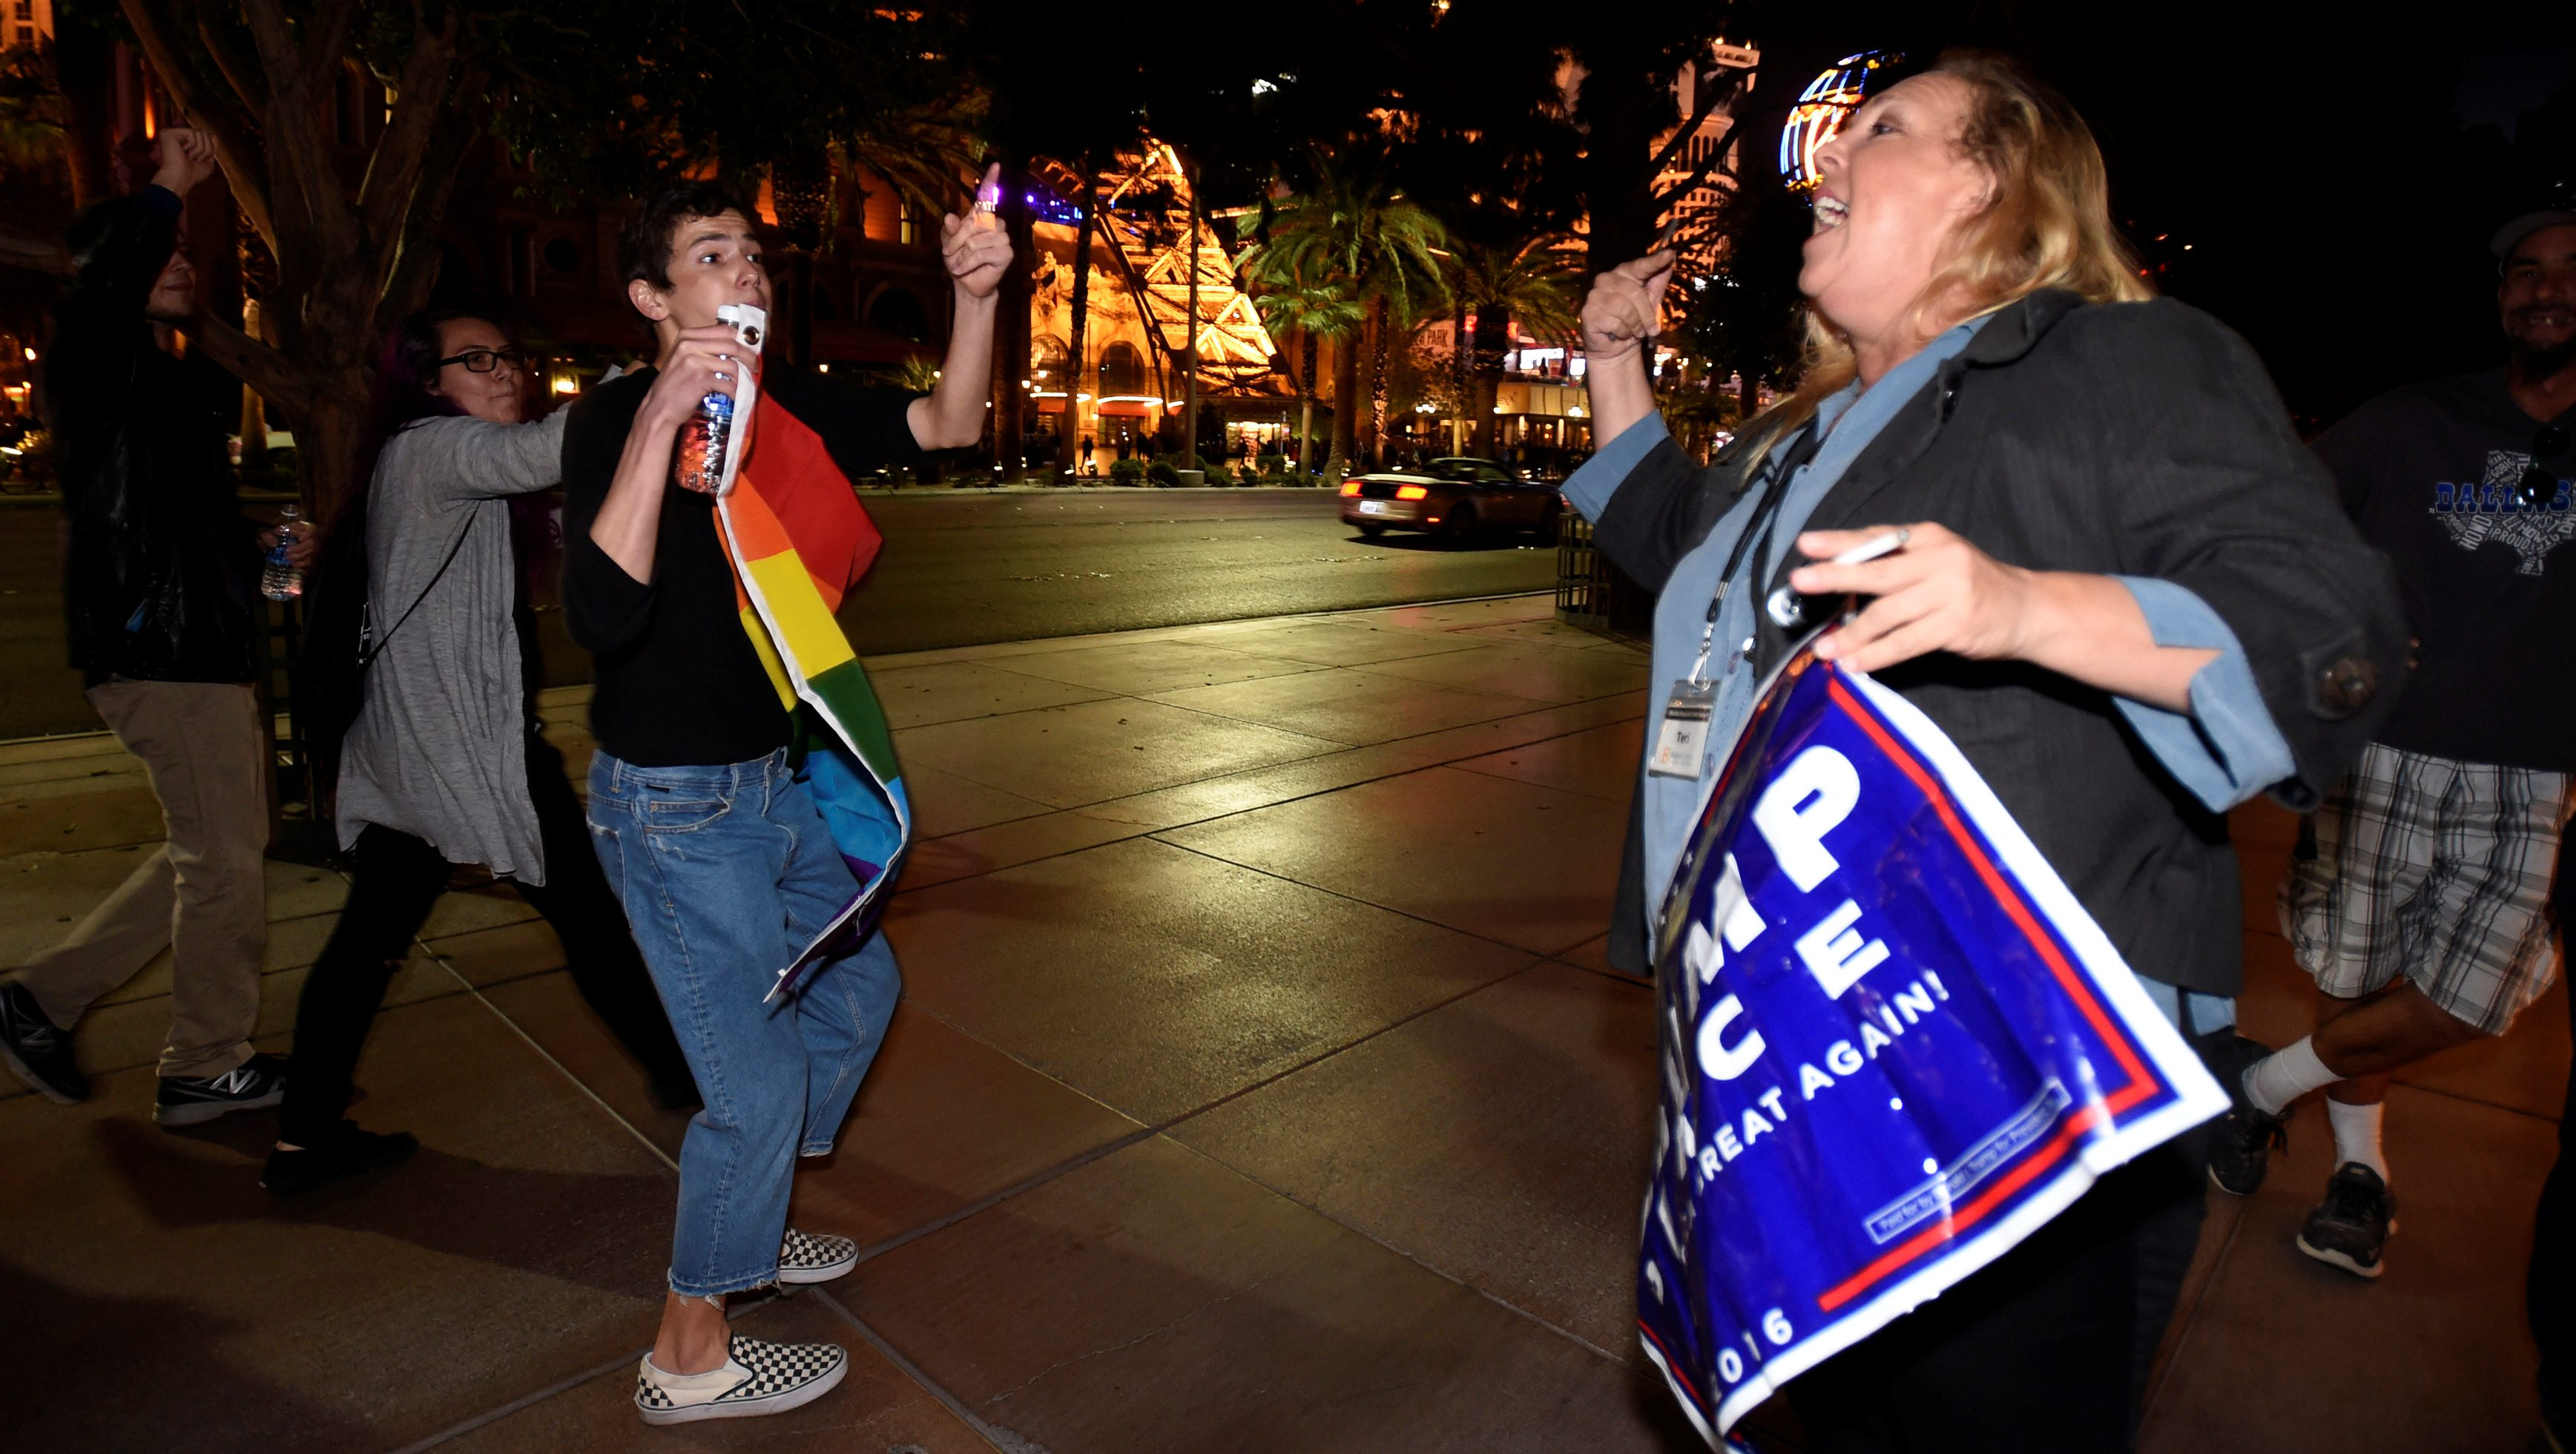 Pino Alessi (L) of Las Vegas argues with a Donald Trump supporter during a protest march against the election of Trump as President of the United States, along the Las Vegas Strip in Las Vegas, Nevada, U.S.